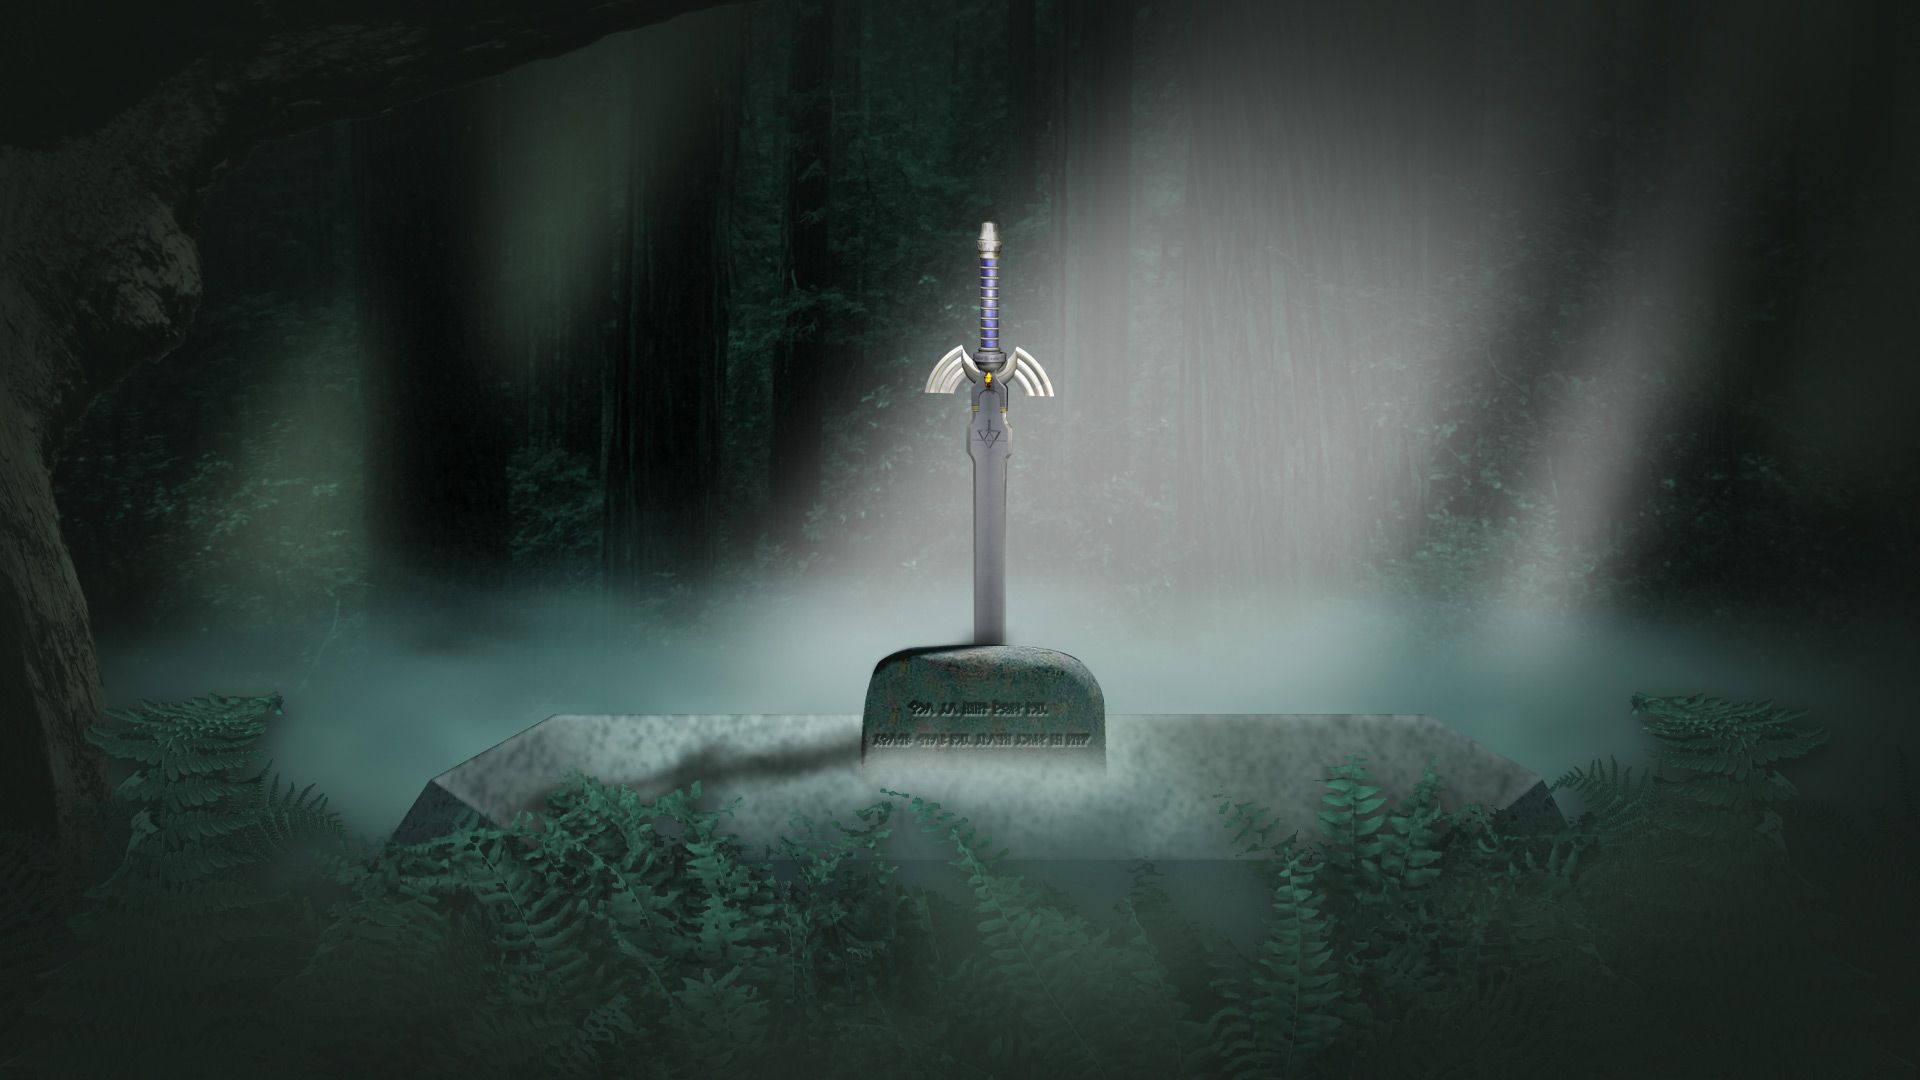 Master Sword Wallpaper Images Pictures   Becuo 1920x1080